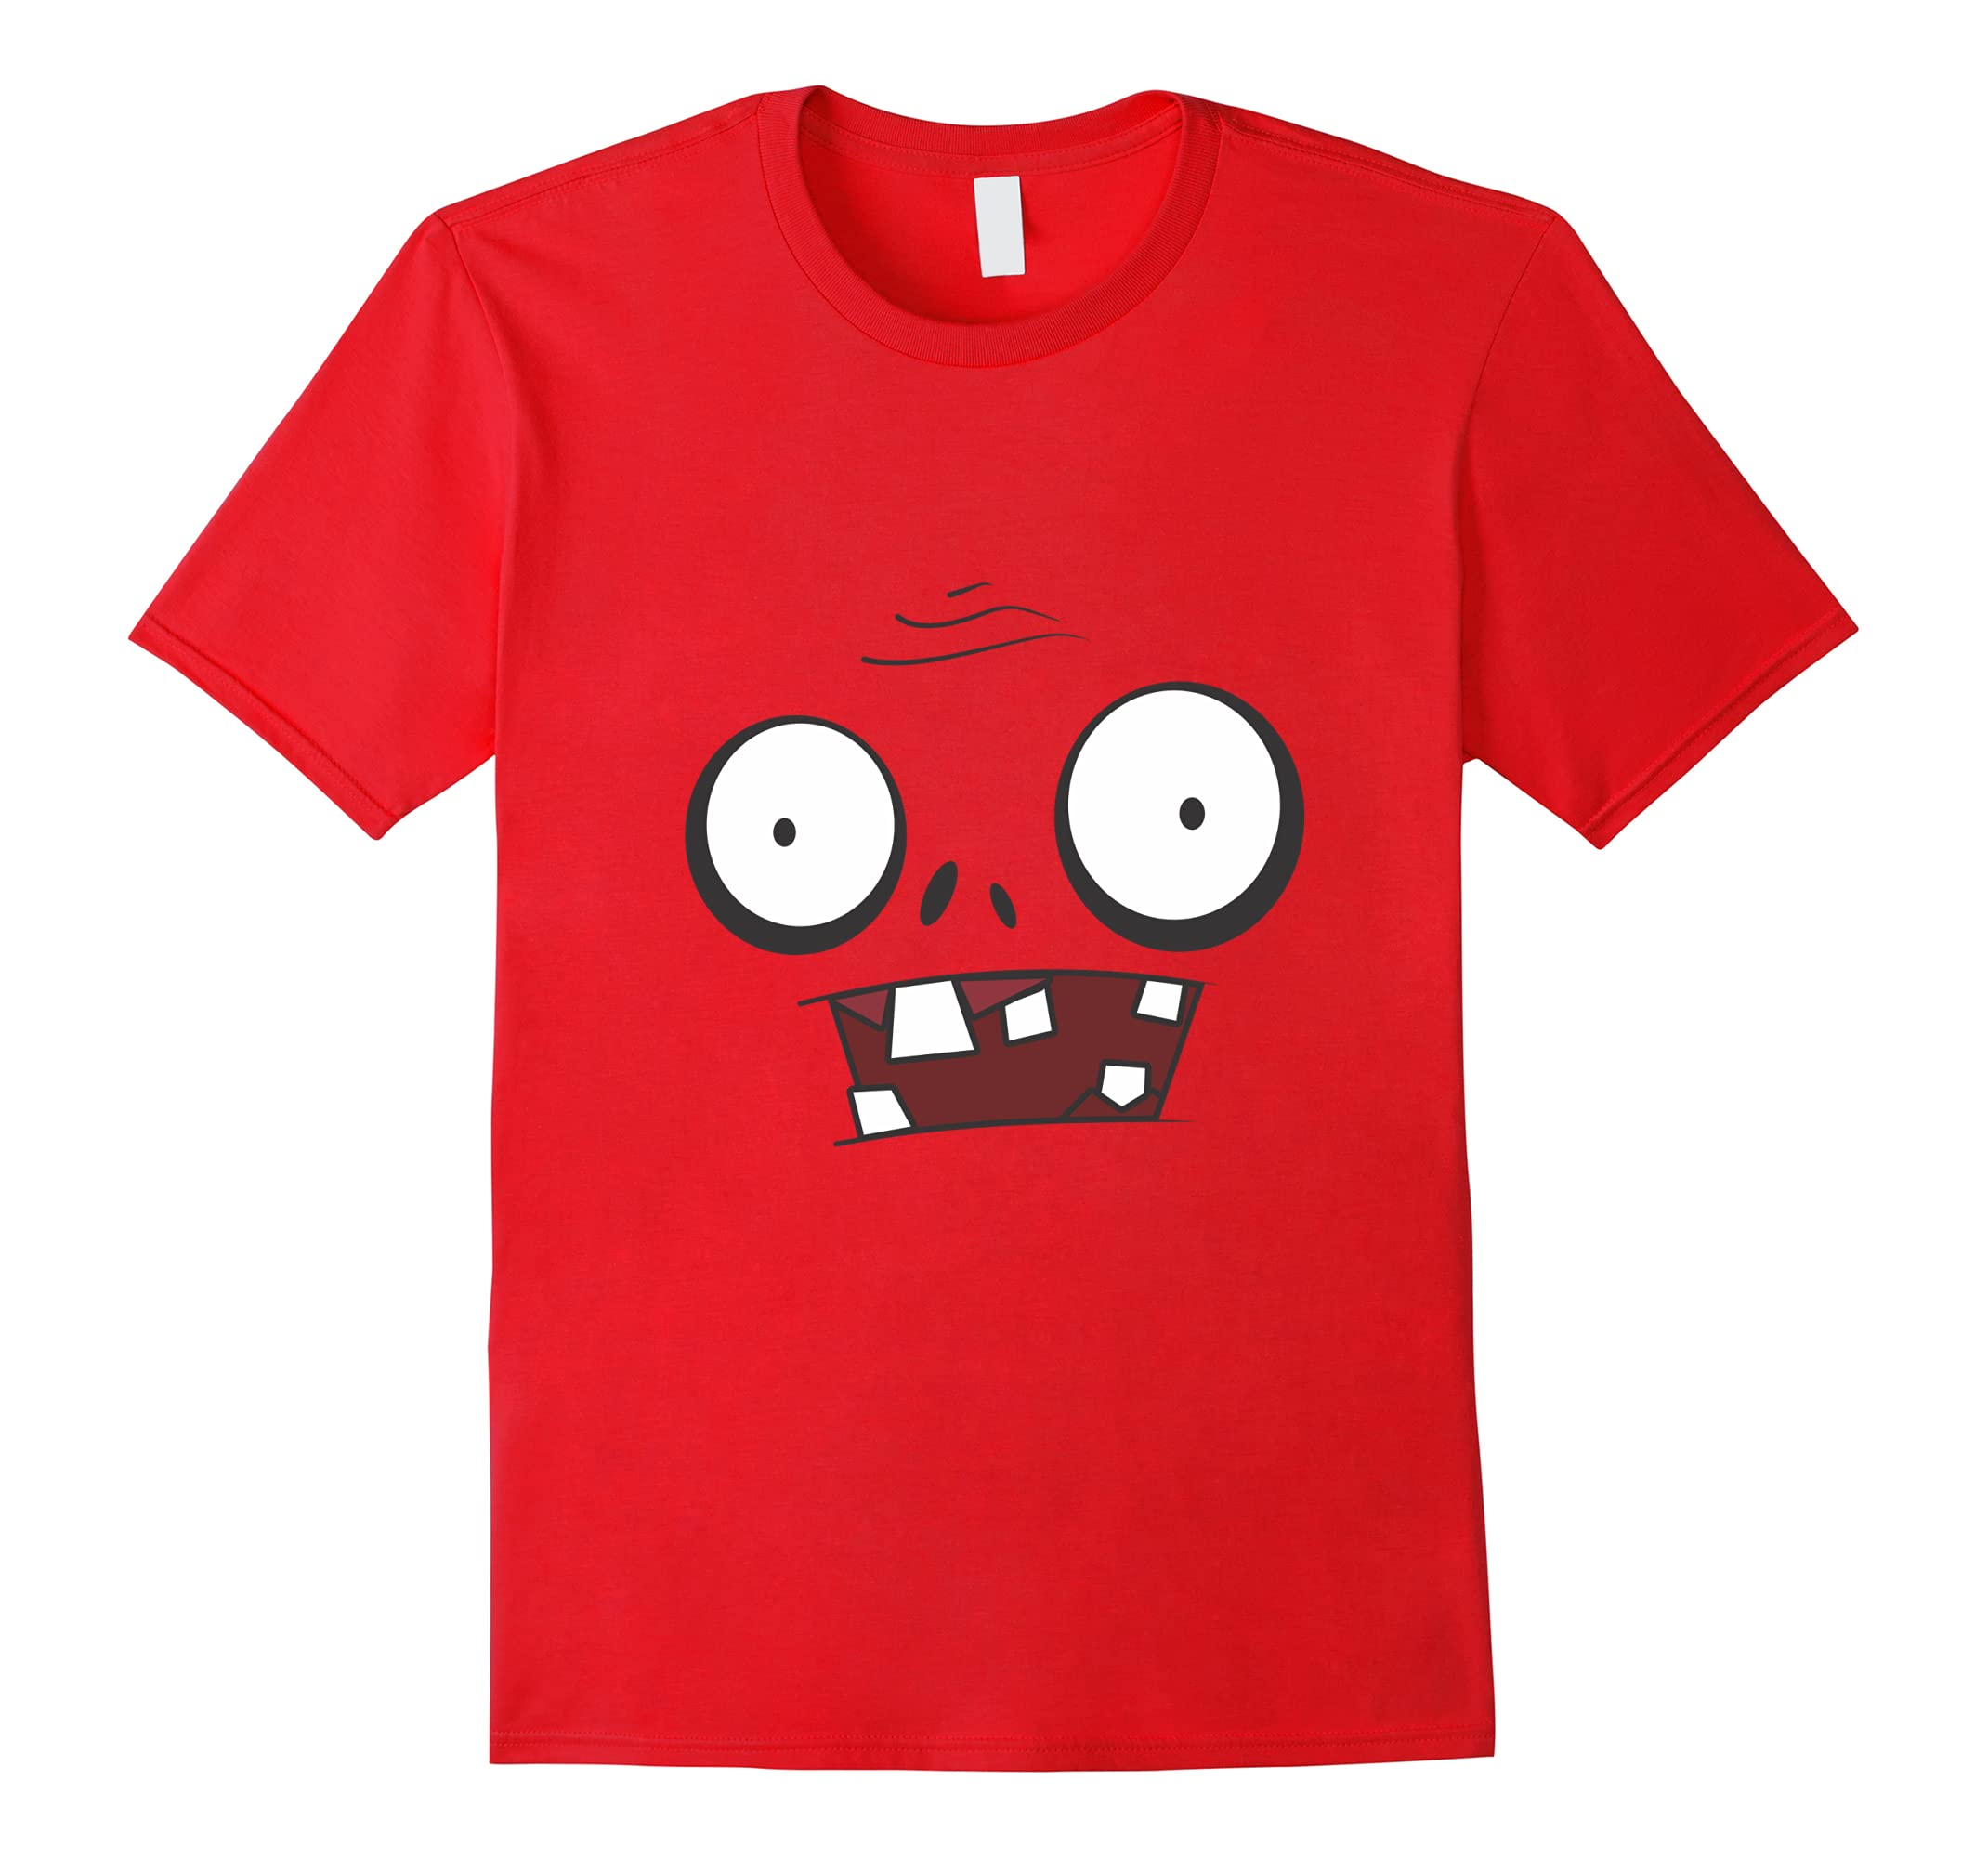 Zombie Lover Shirt Funny Halloween Gift Apparel For Gamers-ah my shirt one gift